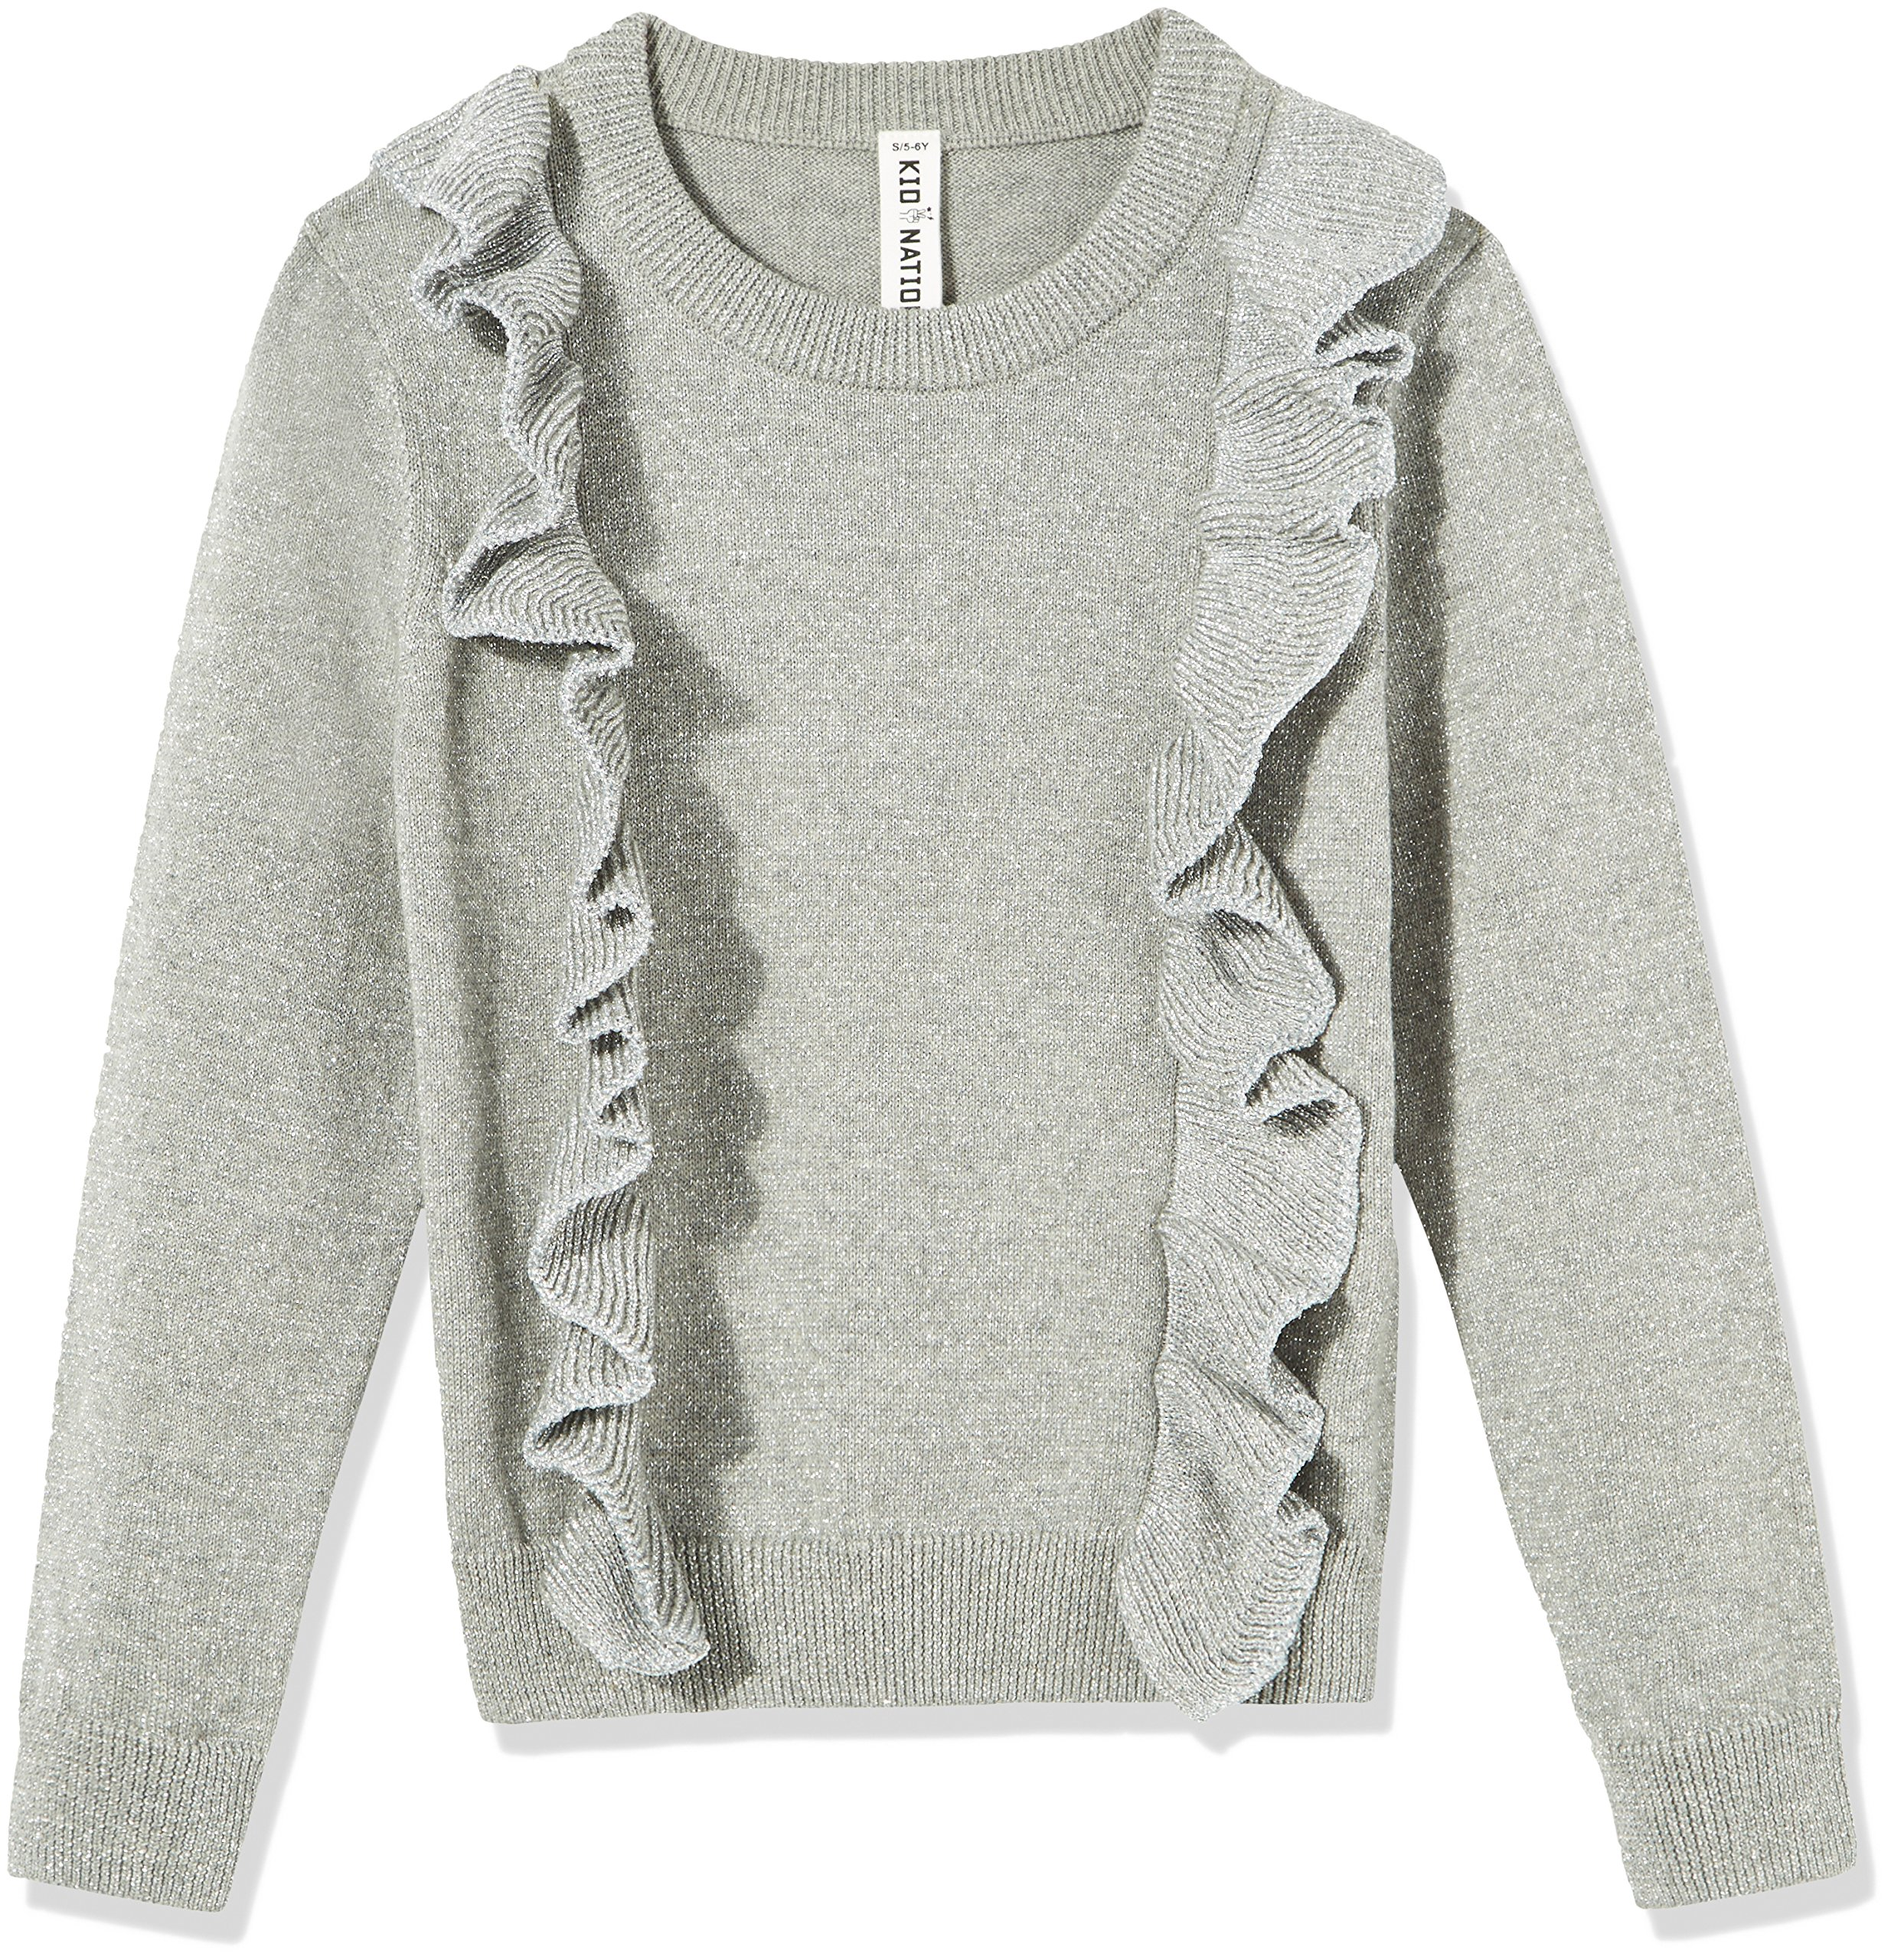 Kid Nation Girls' Long Sleeve Ruffles Pullover Sweater Size S Grey